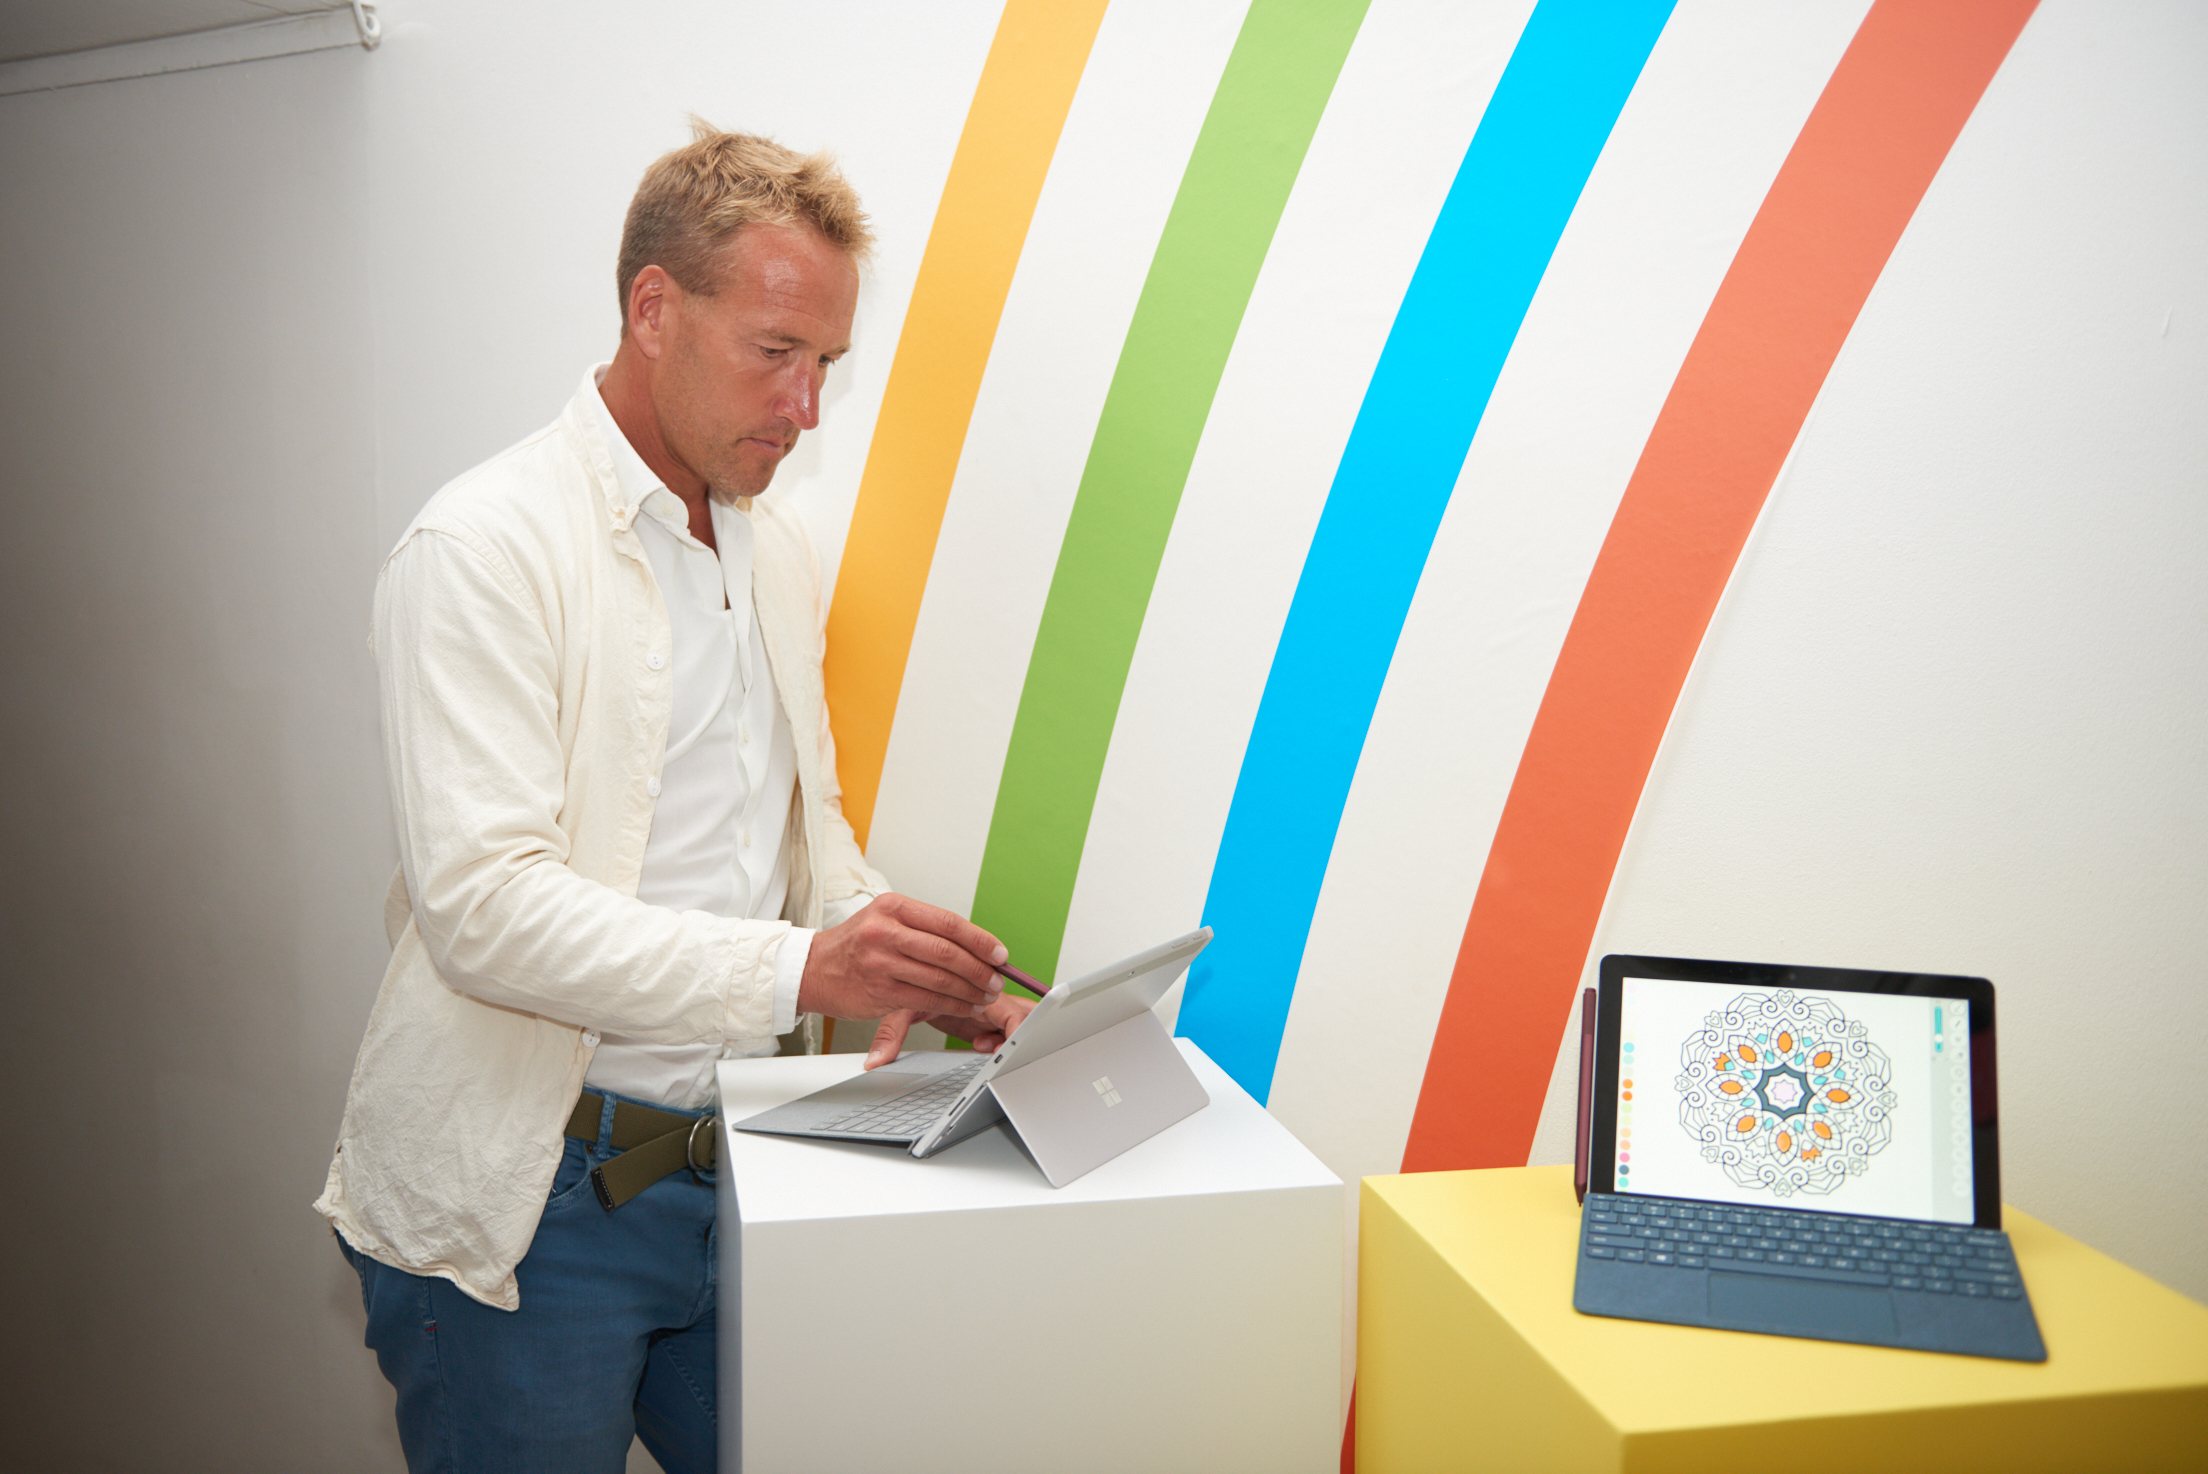 Ben Fogle at the Microsoft Surface Go launch event in London